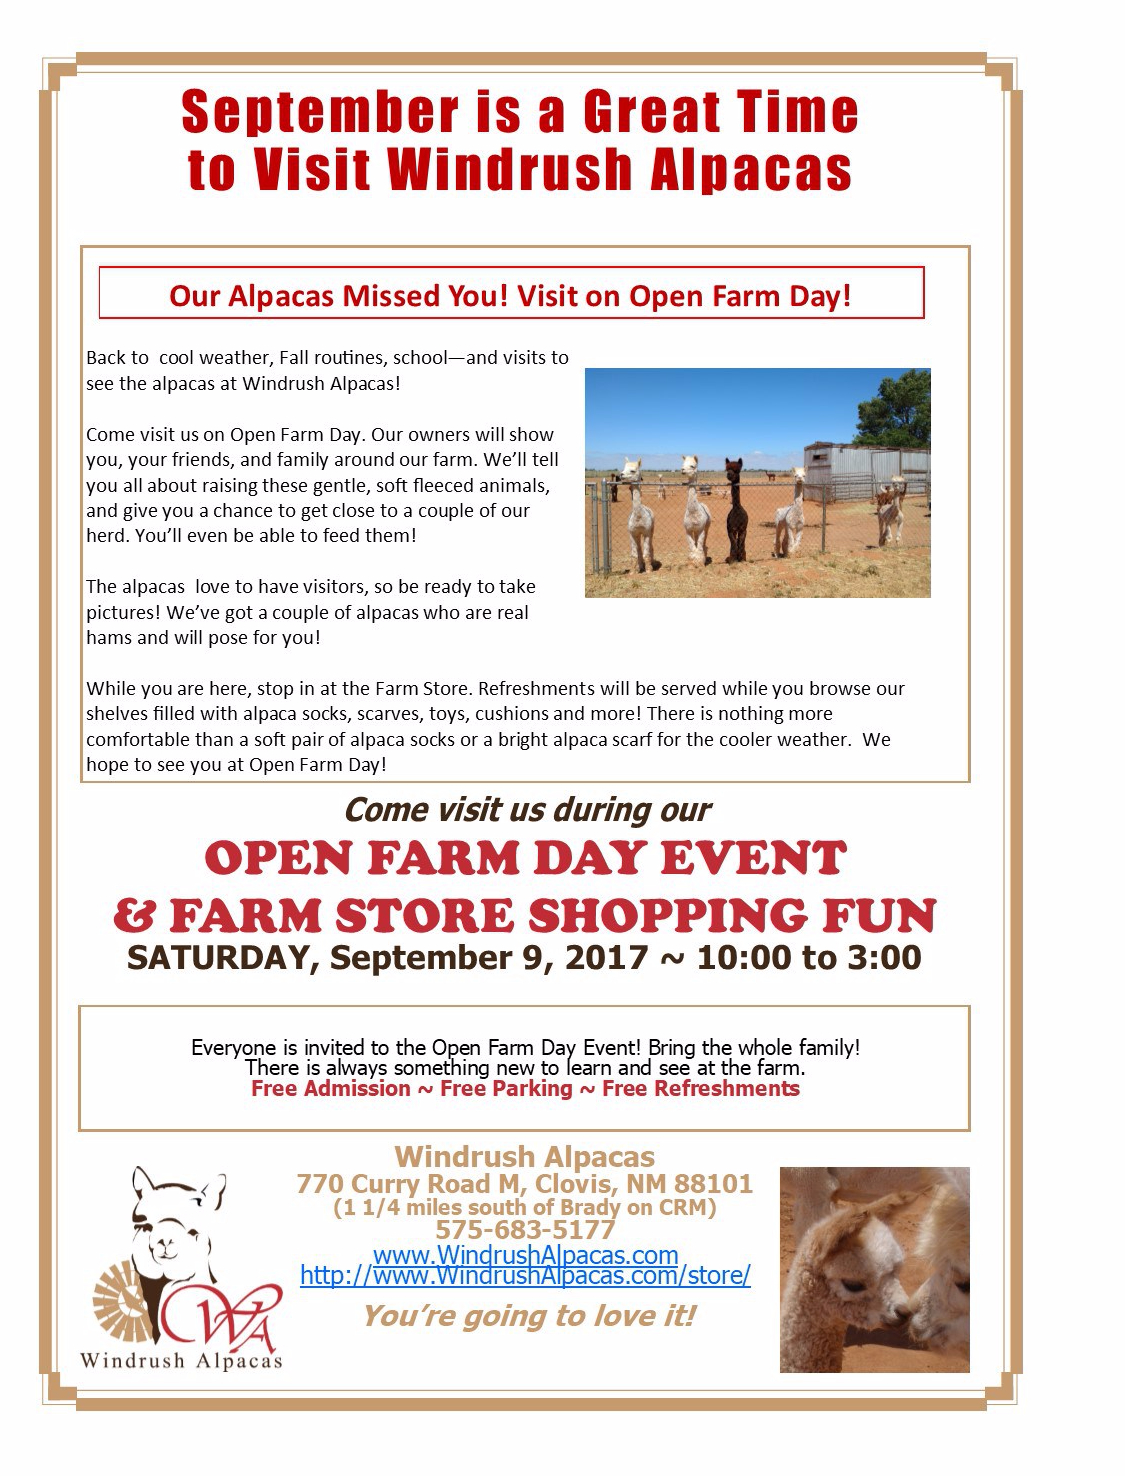 September is a great time to visit Windrush Alpacas